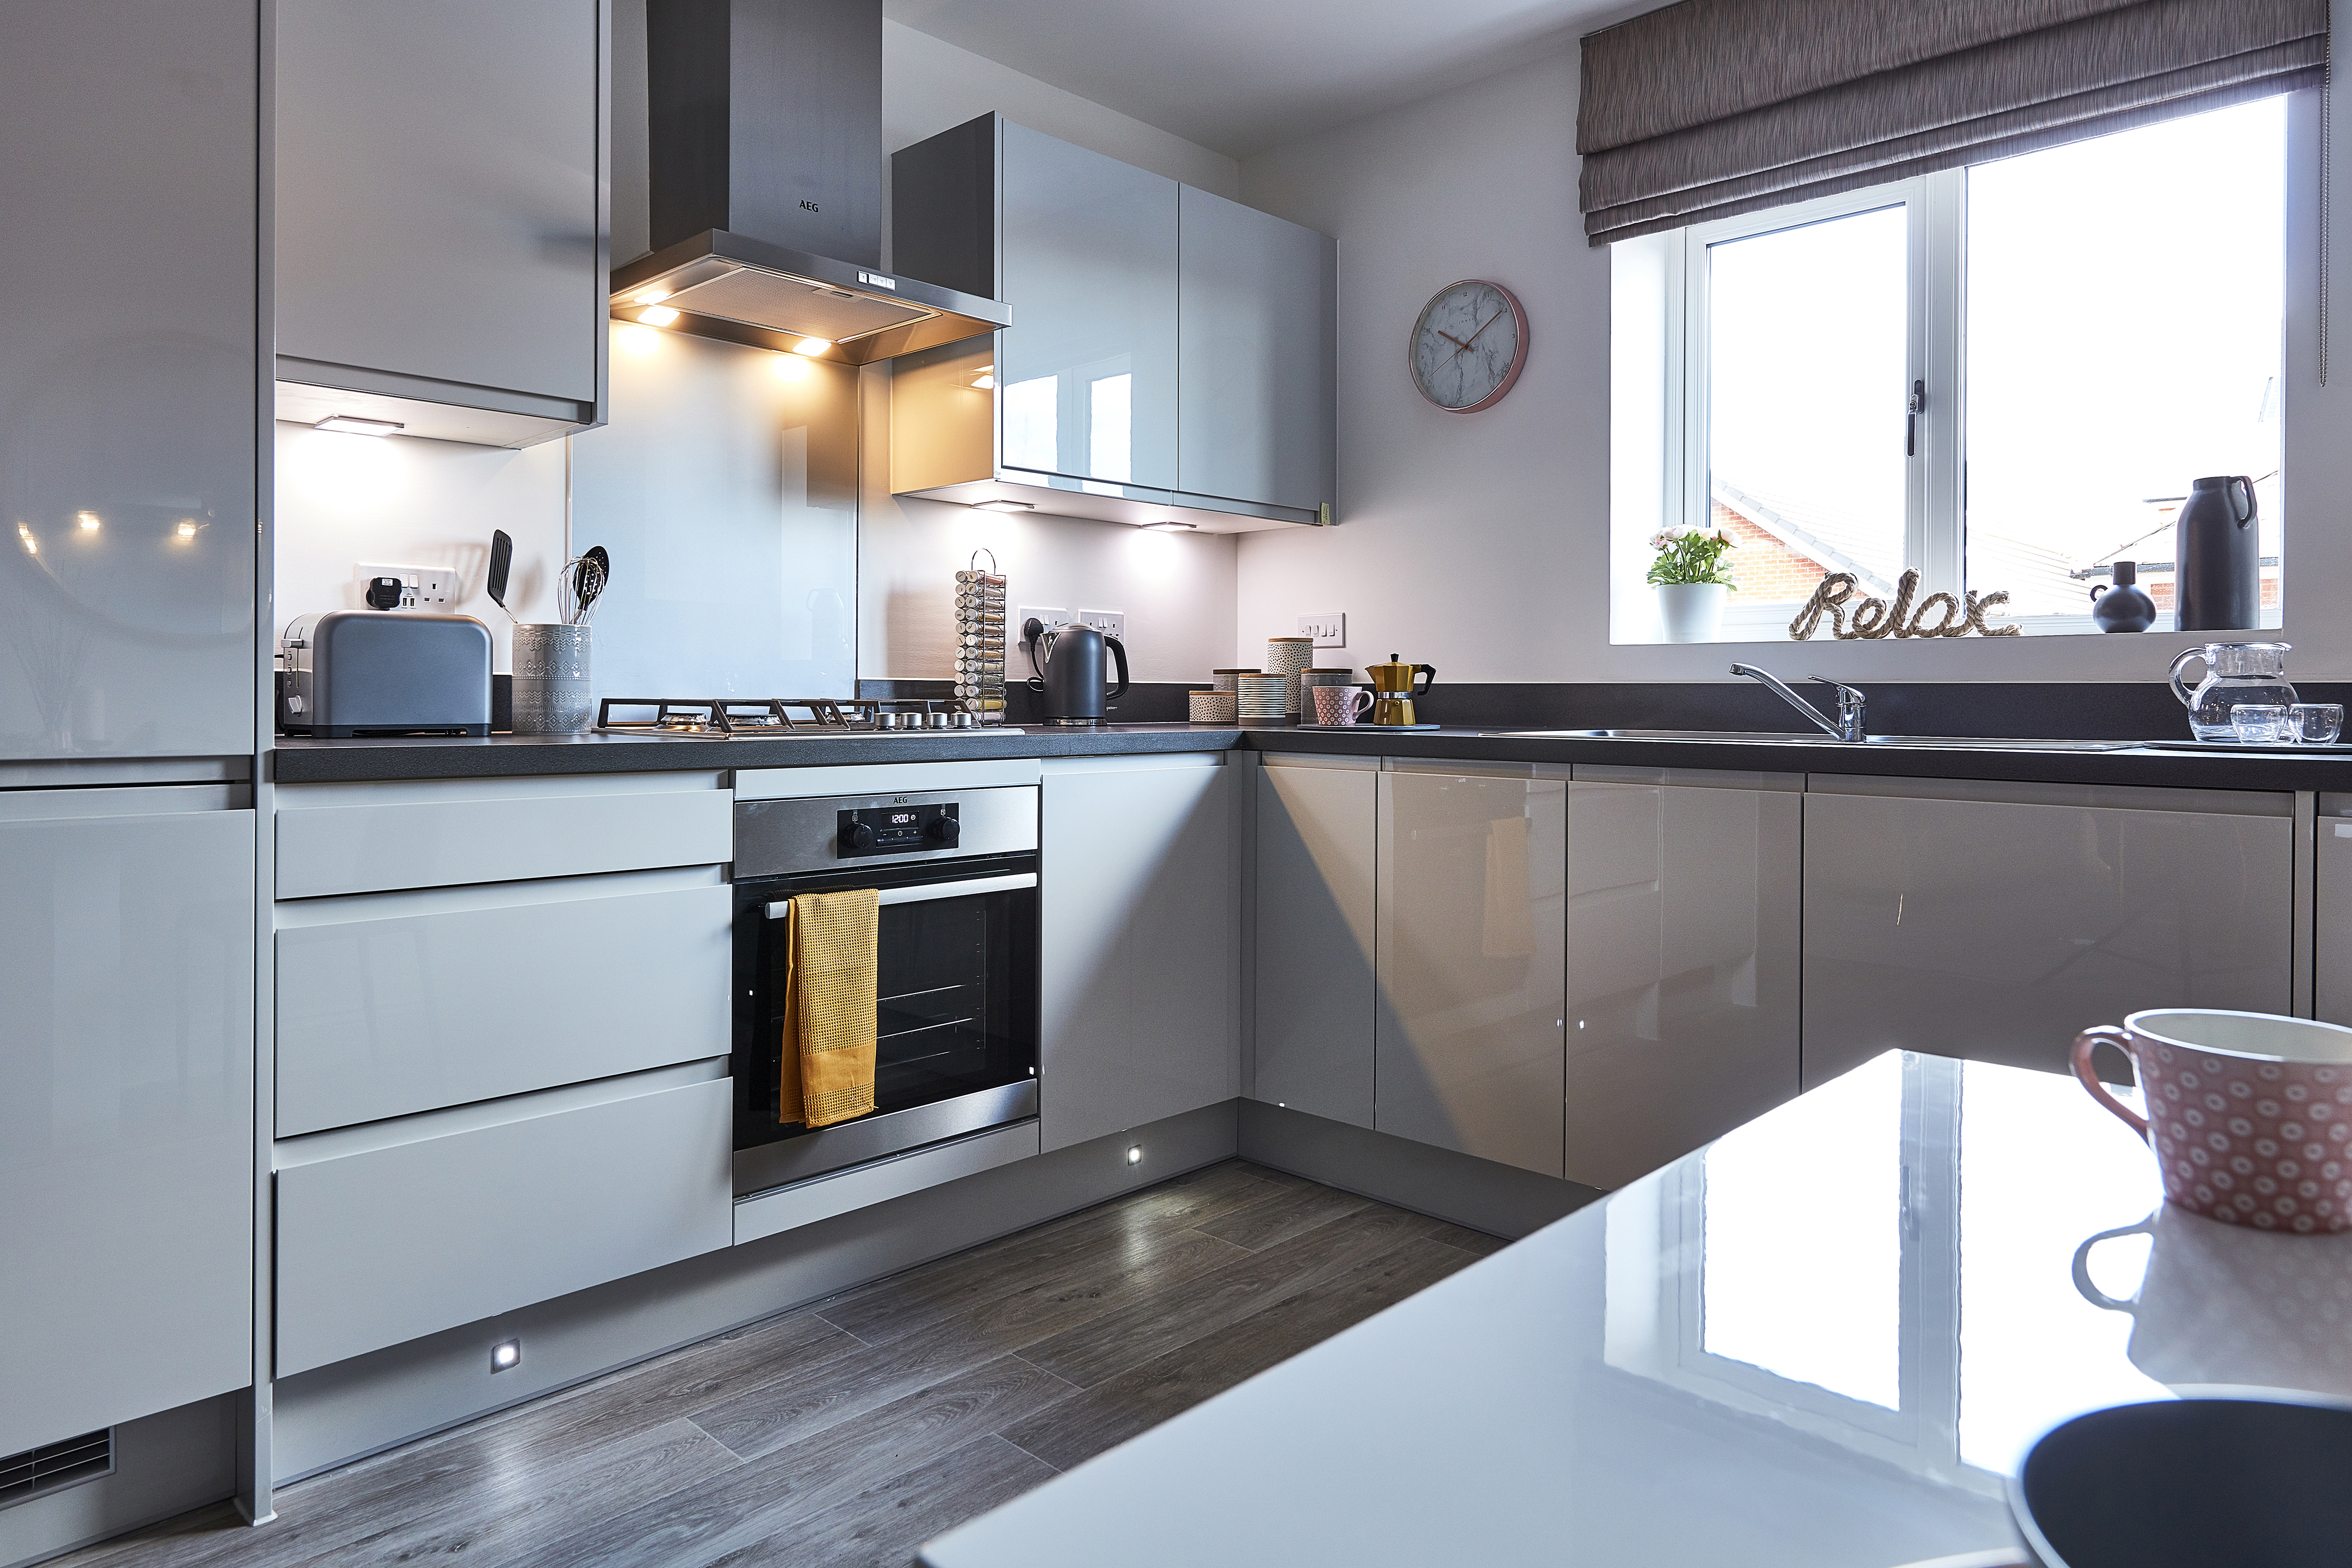 TW WL Croft Garden_Spencers Wood_plot 665 _2 bed apartment_Kitchen